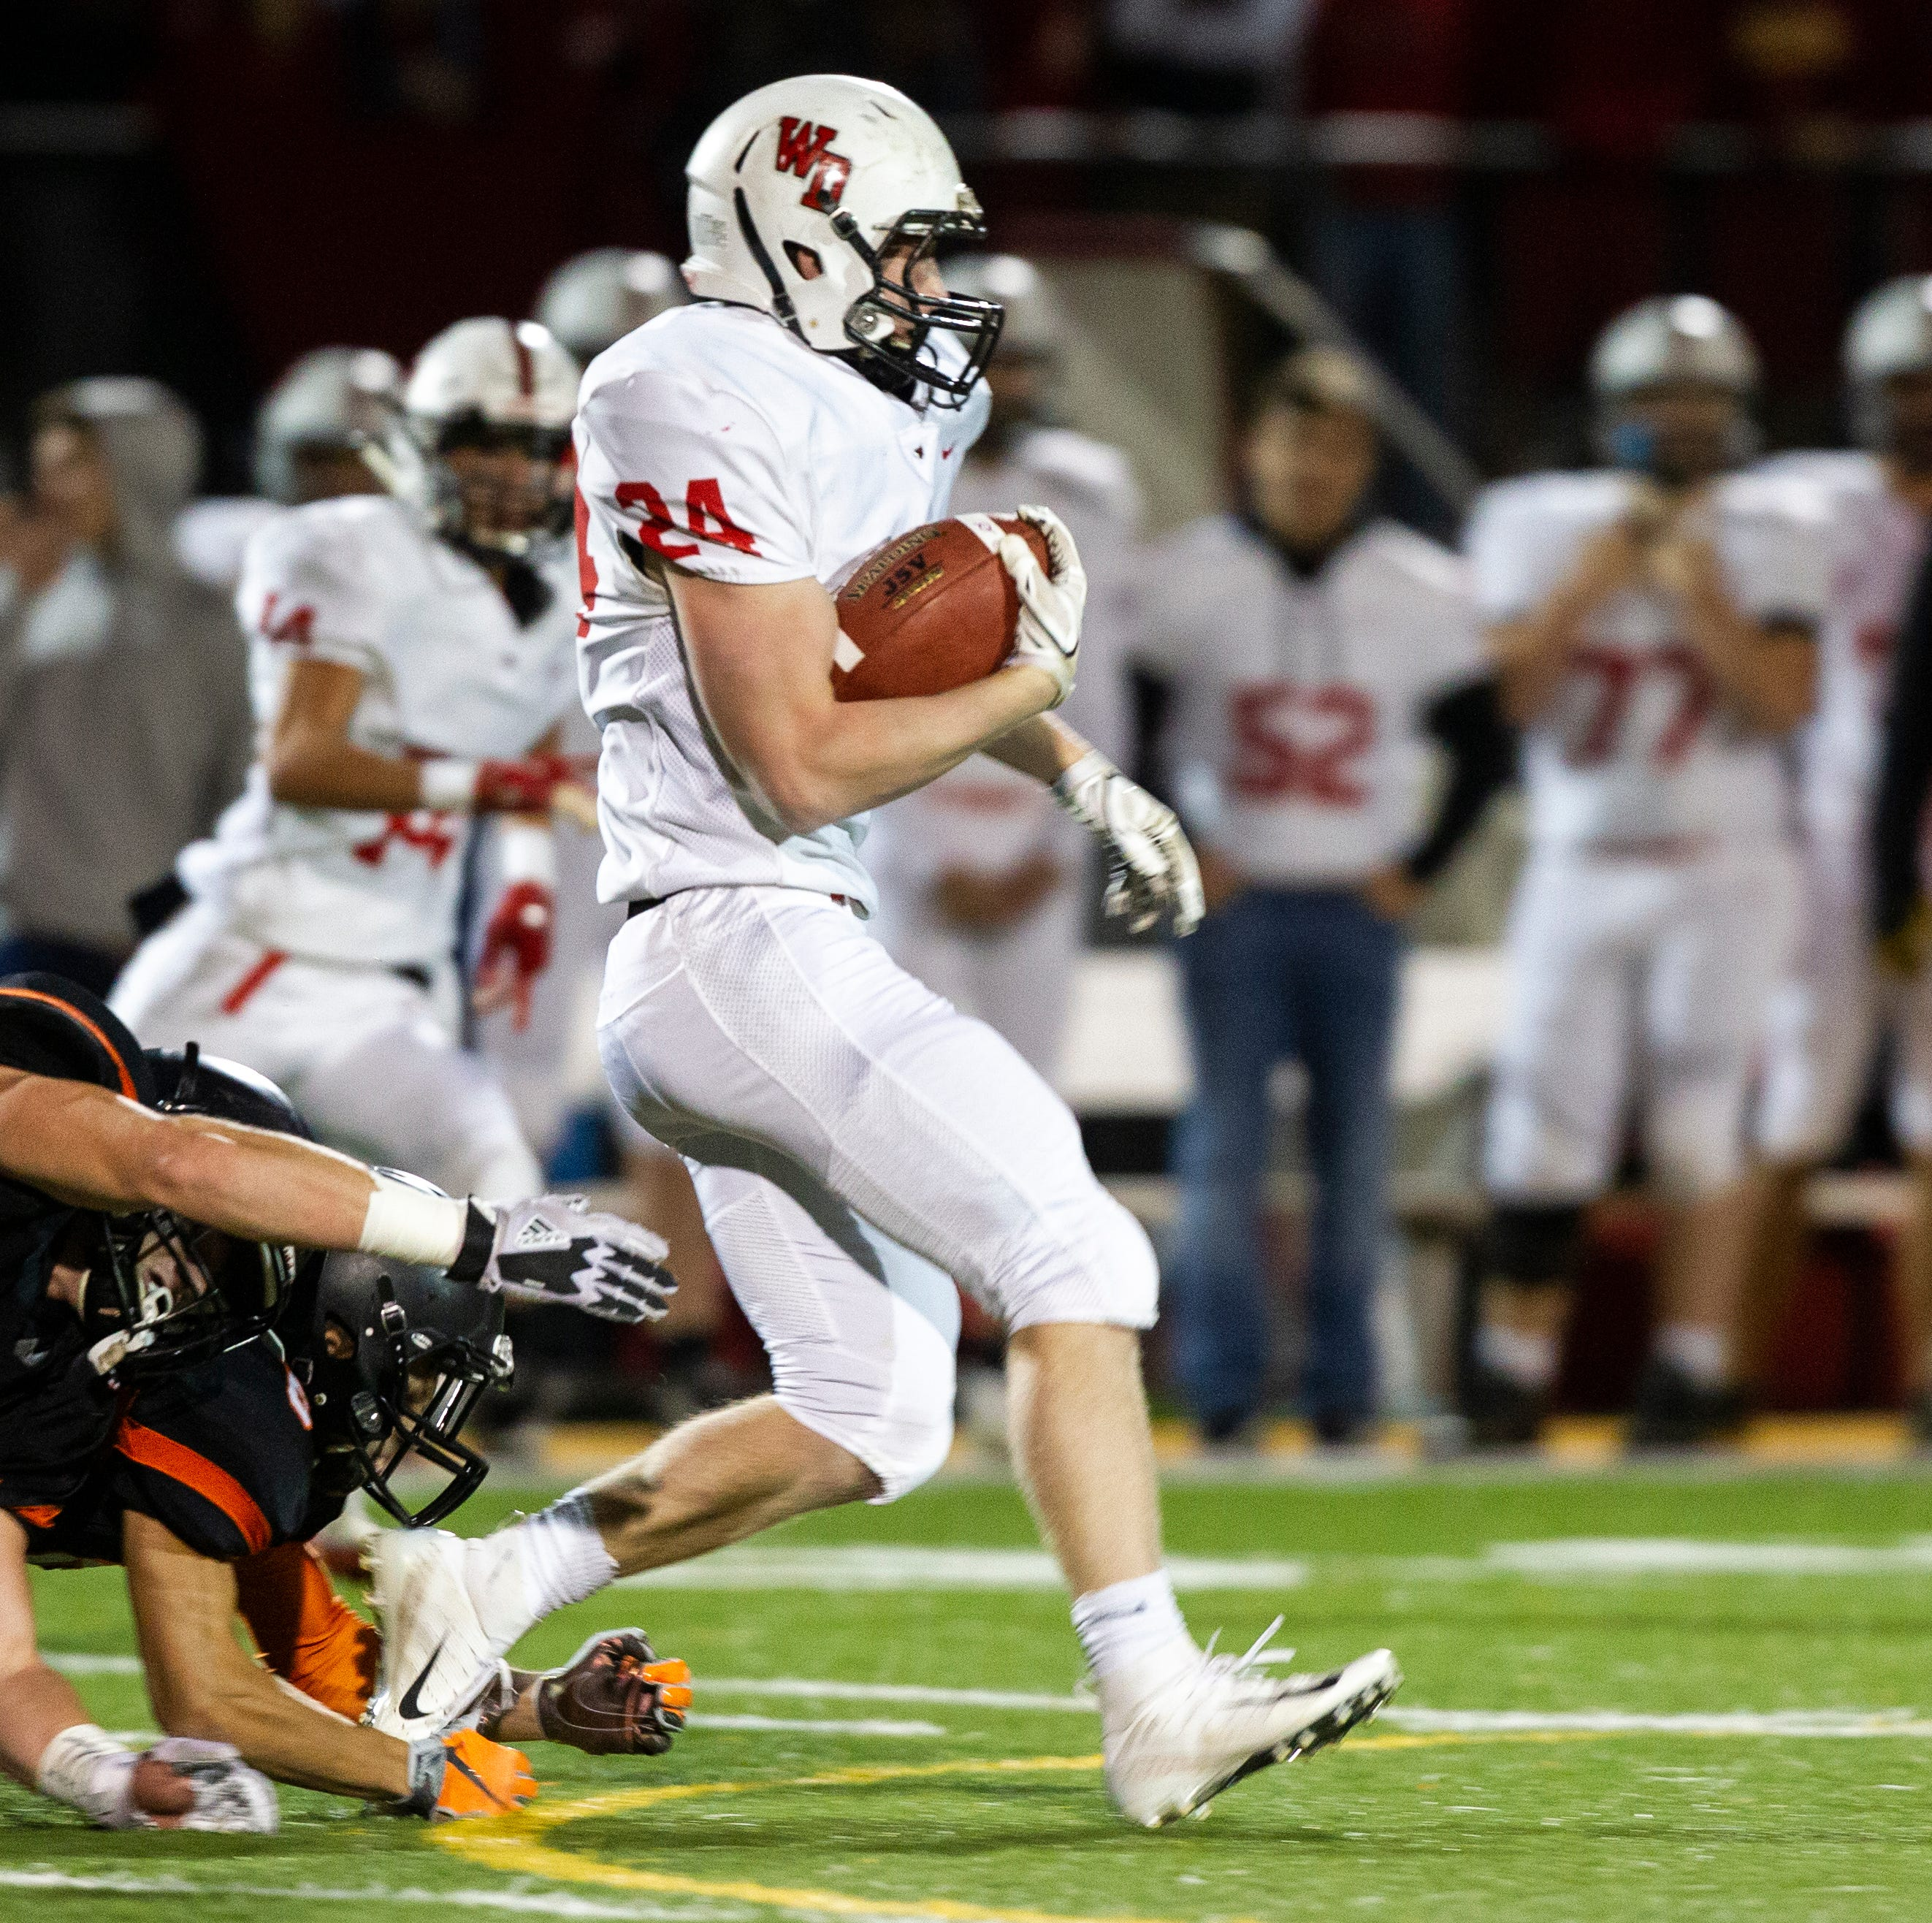 Iowa high school football playoffs: What we learned from Western Dubuque's win over Solon